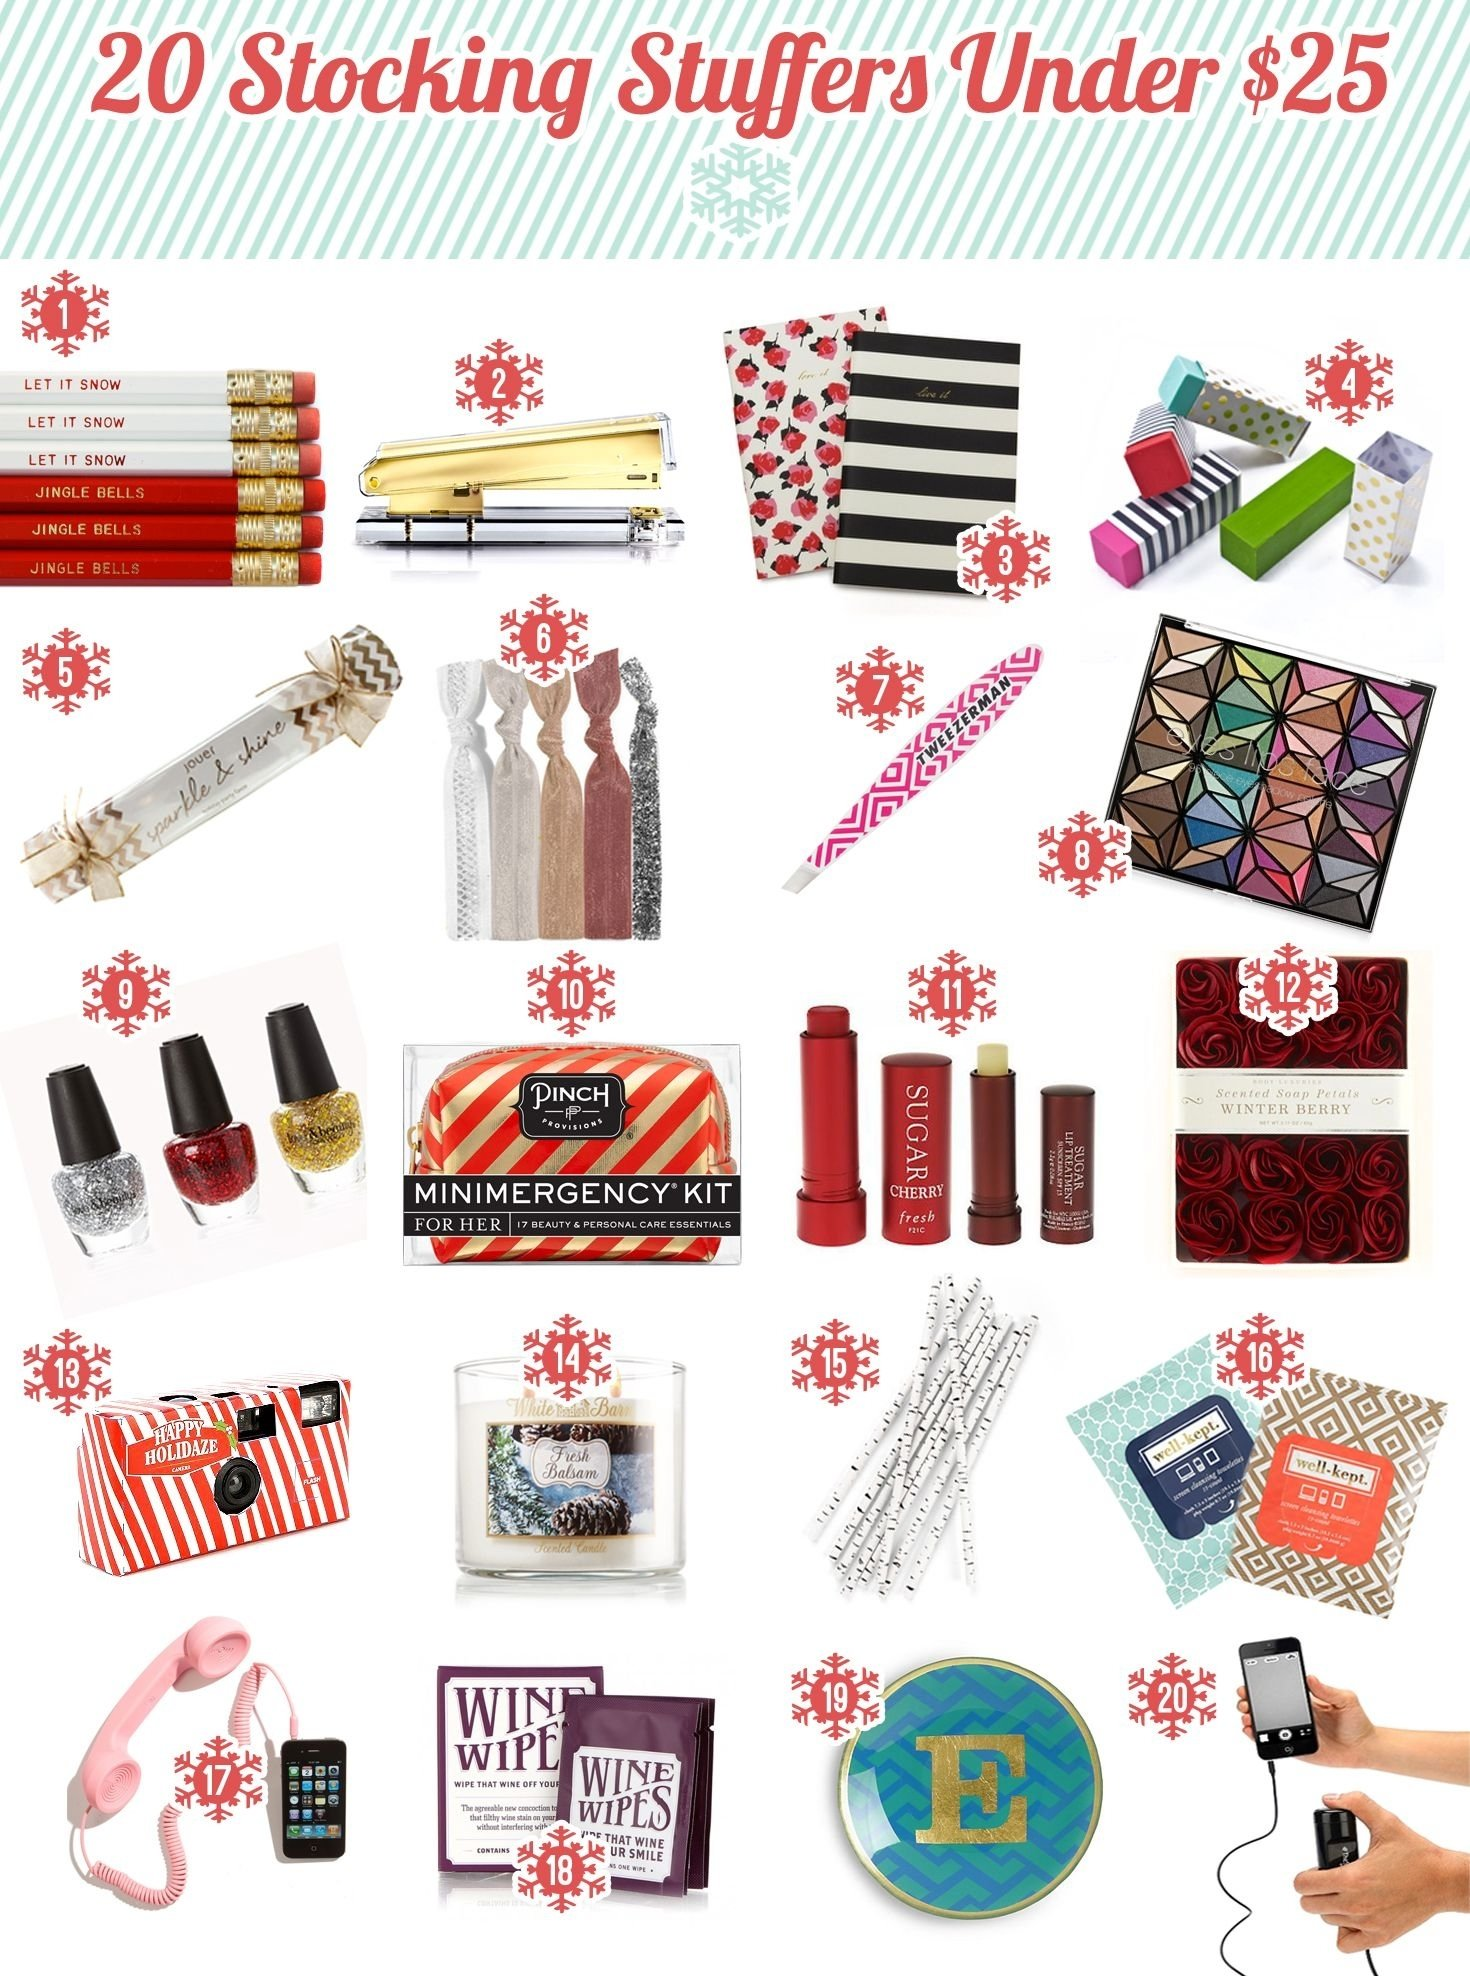 10 Best Secret Santa Ideas For Women 2013 holiday gift guide secret santa gift ideas under 25 most are 4 2021